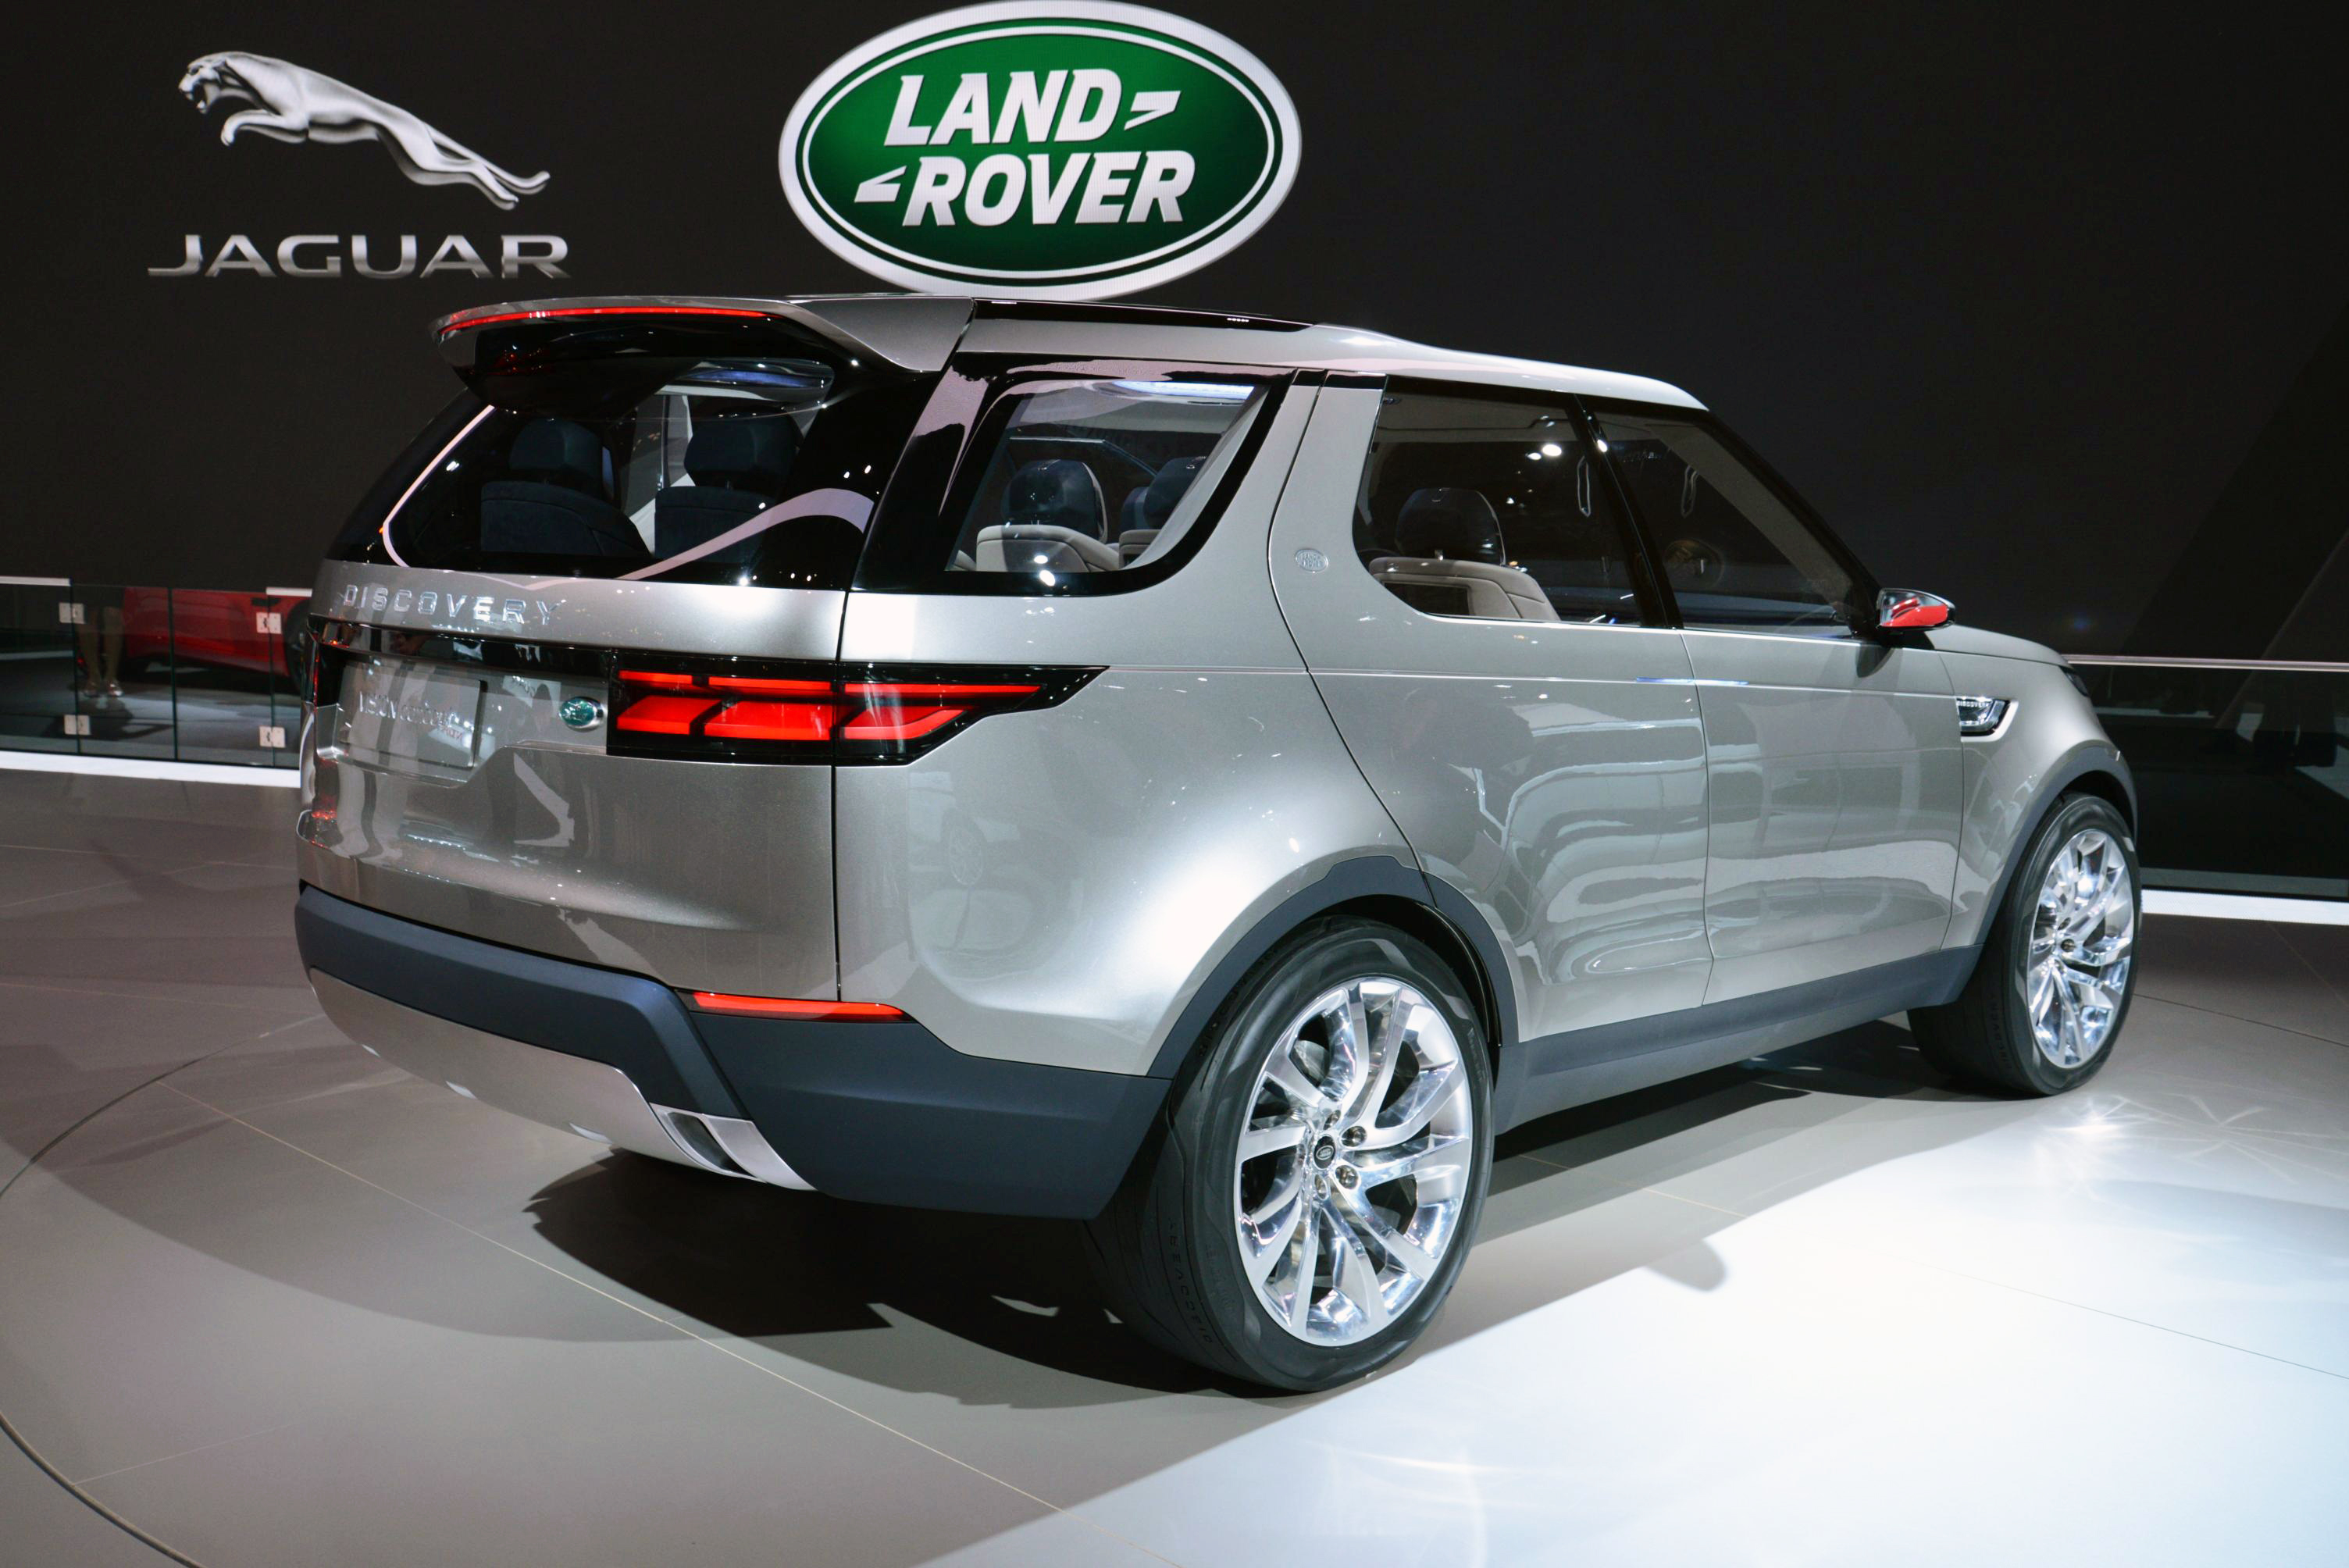 image landrover live concept sport price rover vision tan land discovery g paul announced due